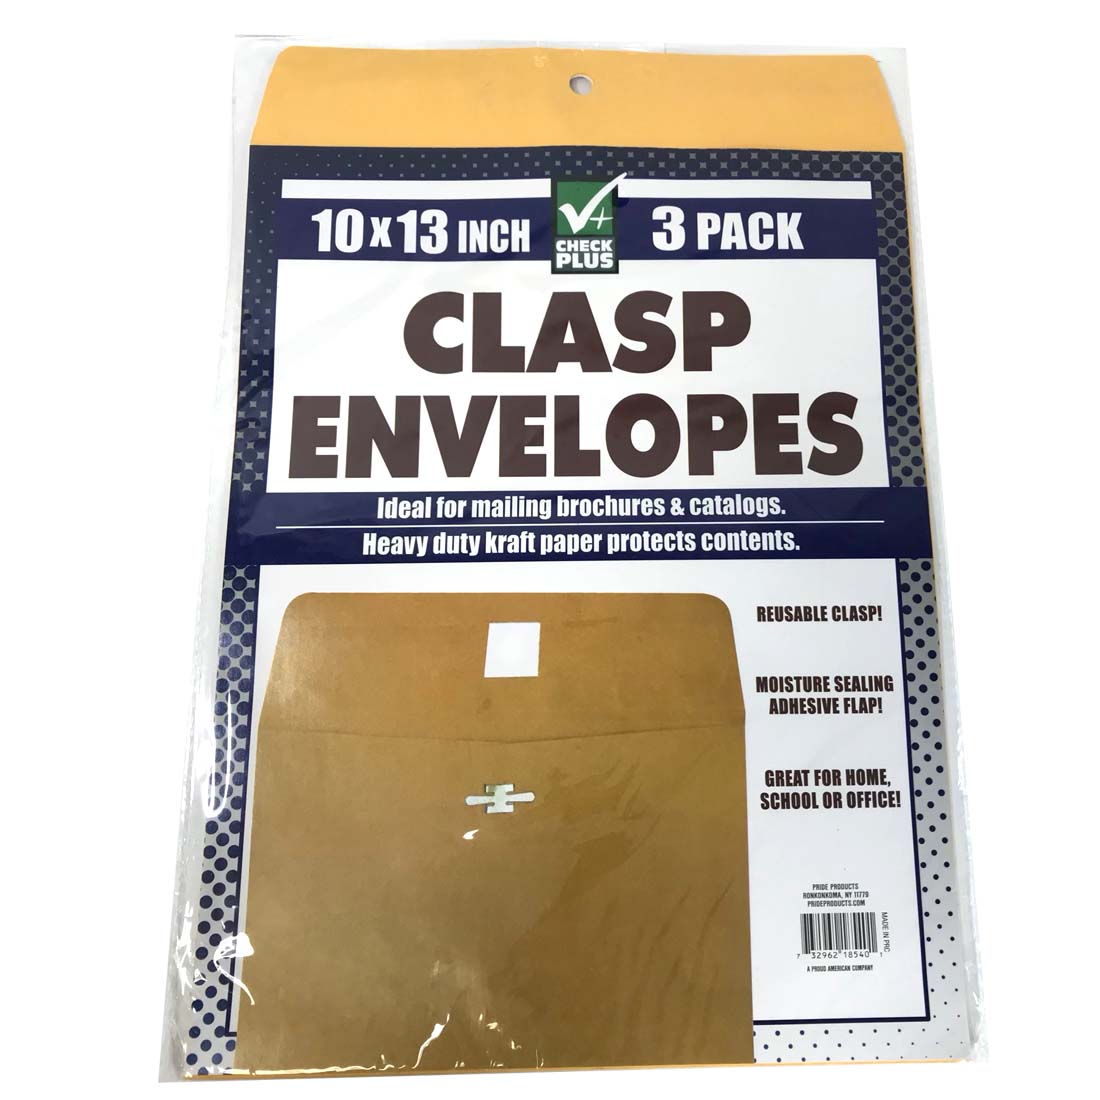 View CLASP ENVELOPES 3 PACK 10 X 13 INCH